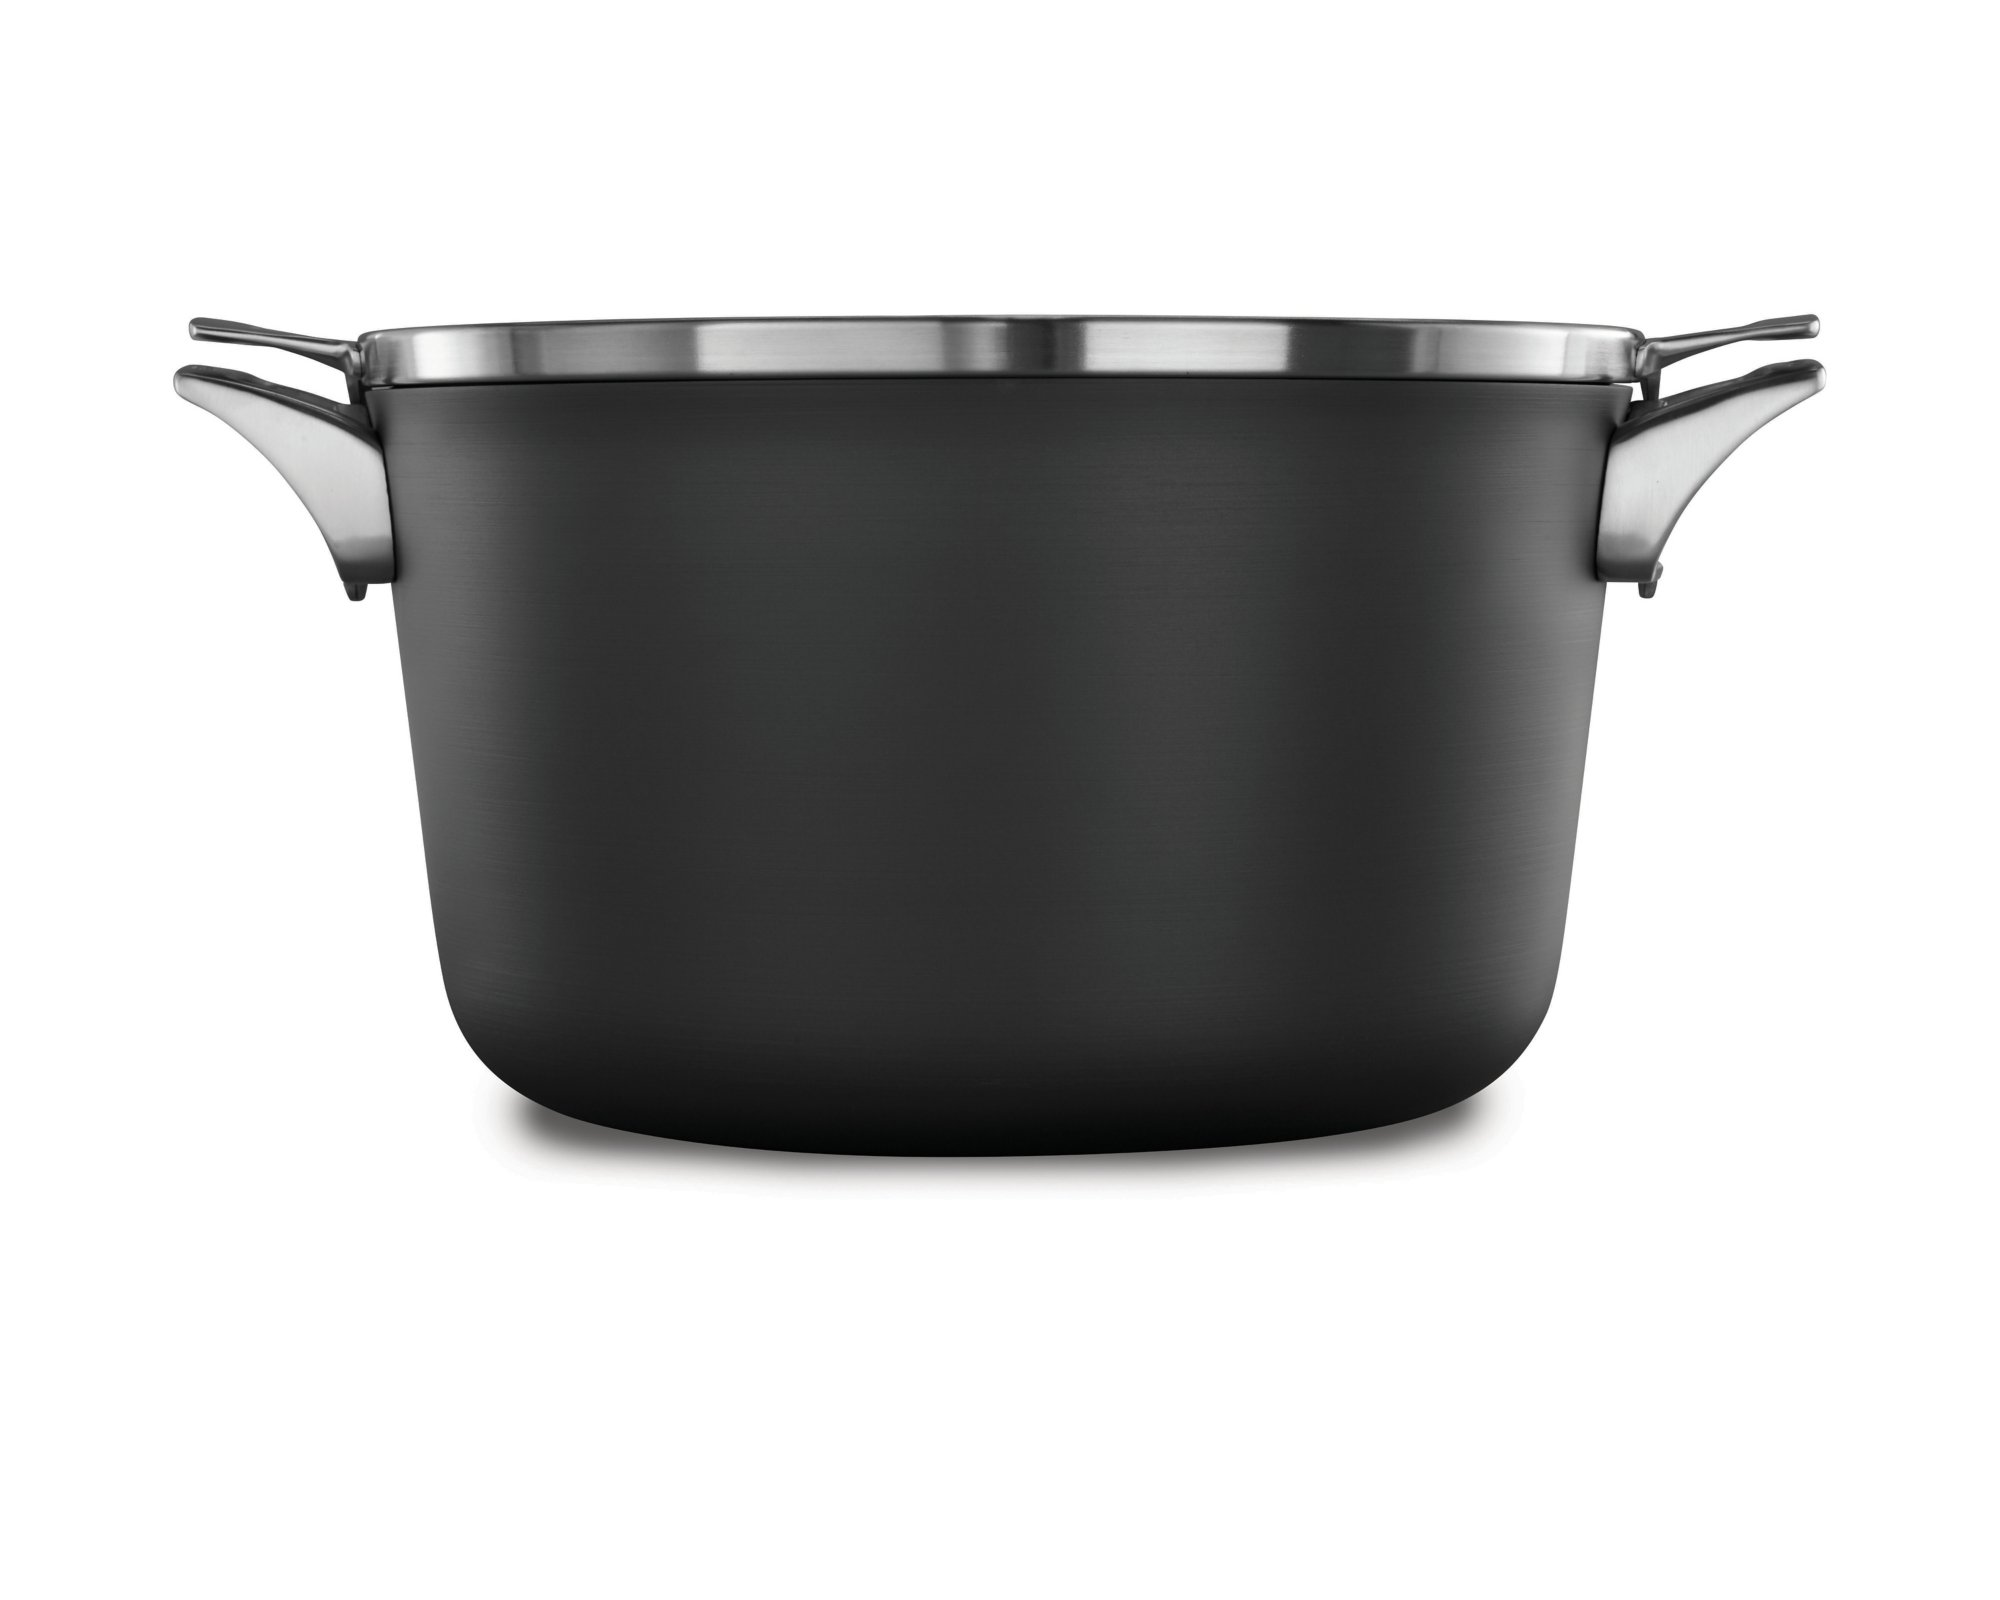 Calphalon Premier™ Space Saving Hard Anodized Nonstick 12 qt. Stock Pot with Cover